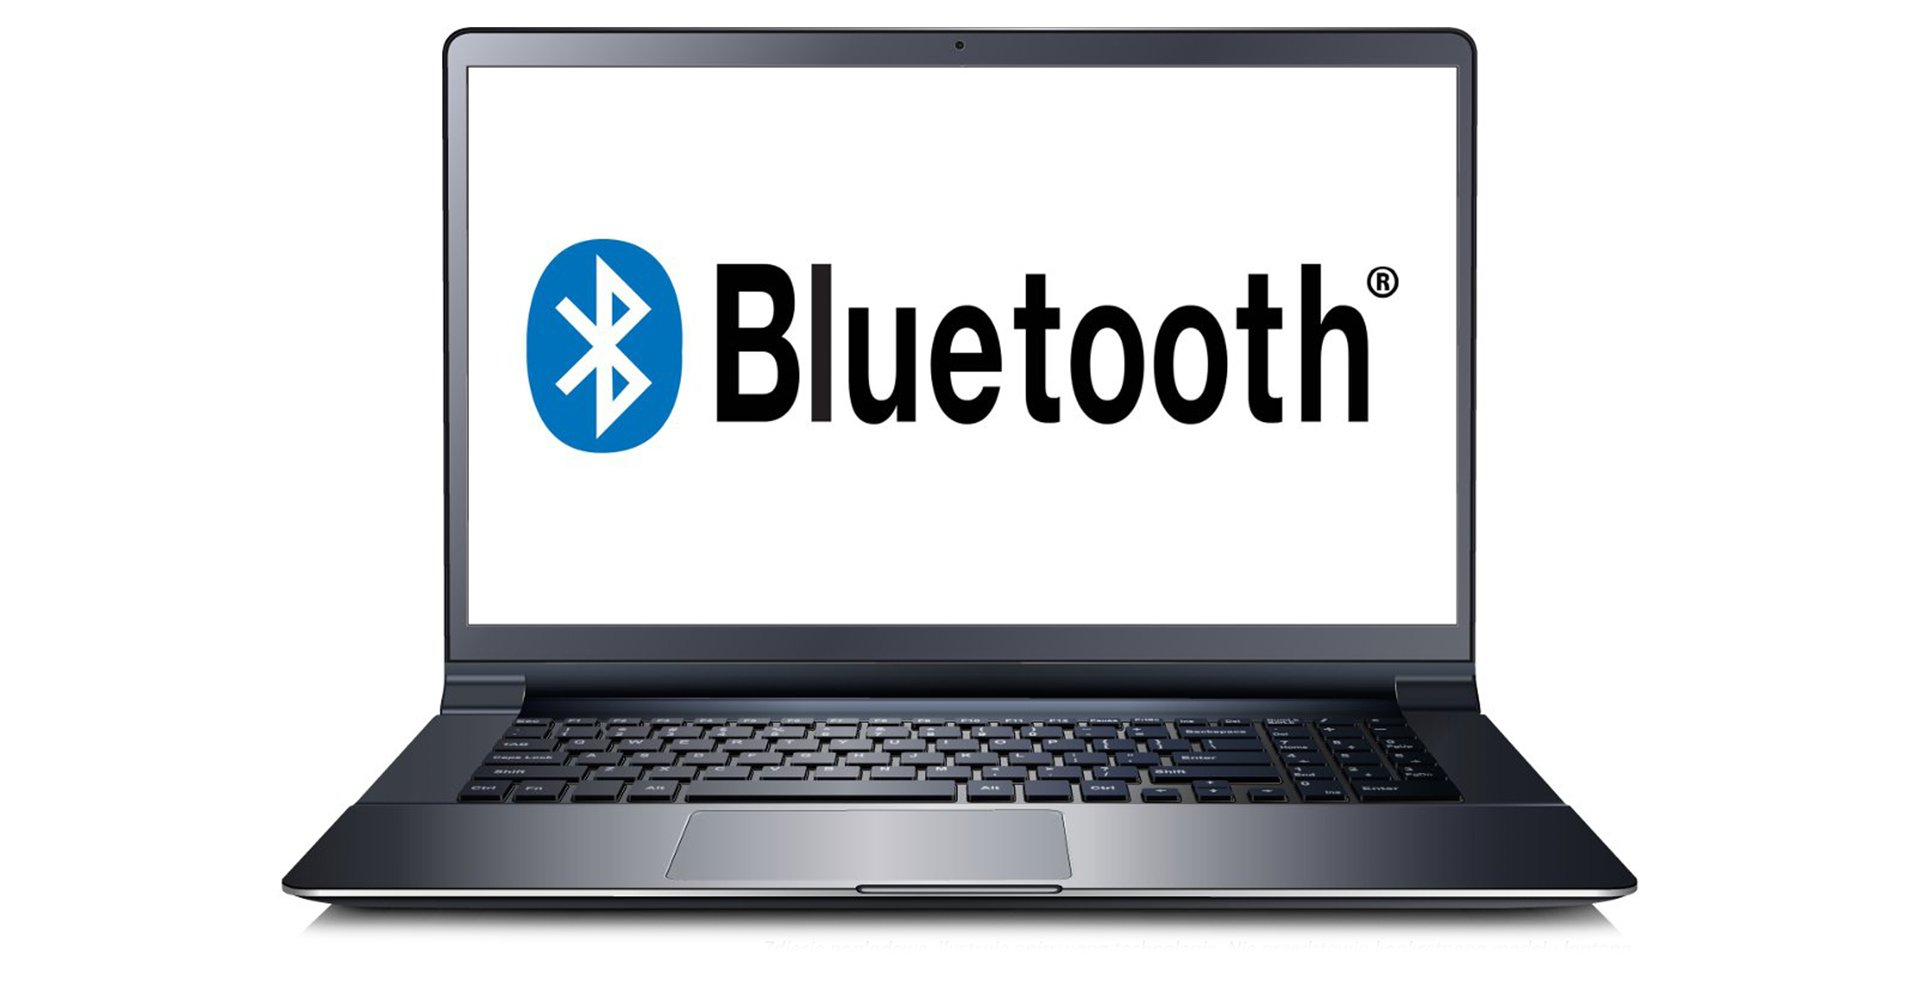 Lenovo V110-15IKB (80TH003BPB)                              Bluetooth